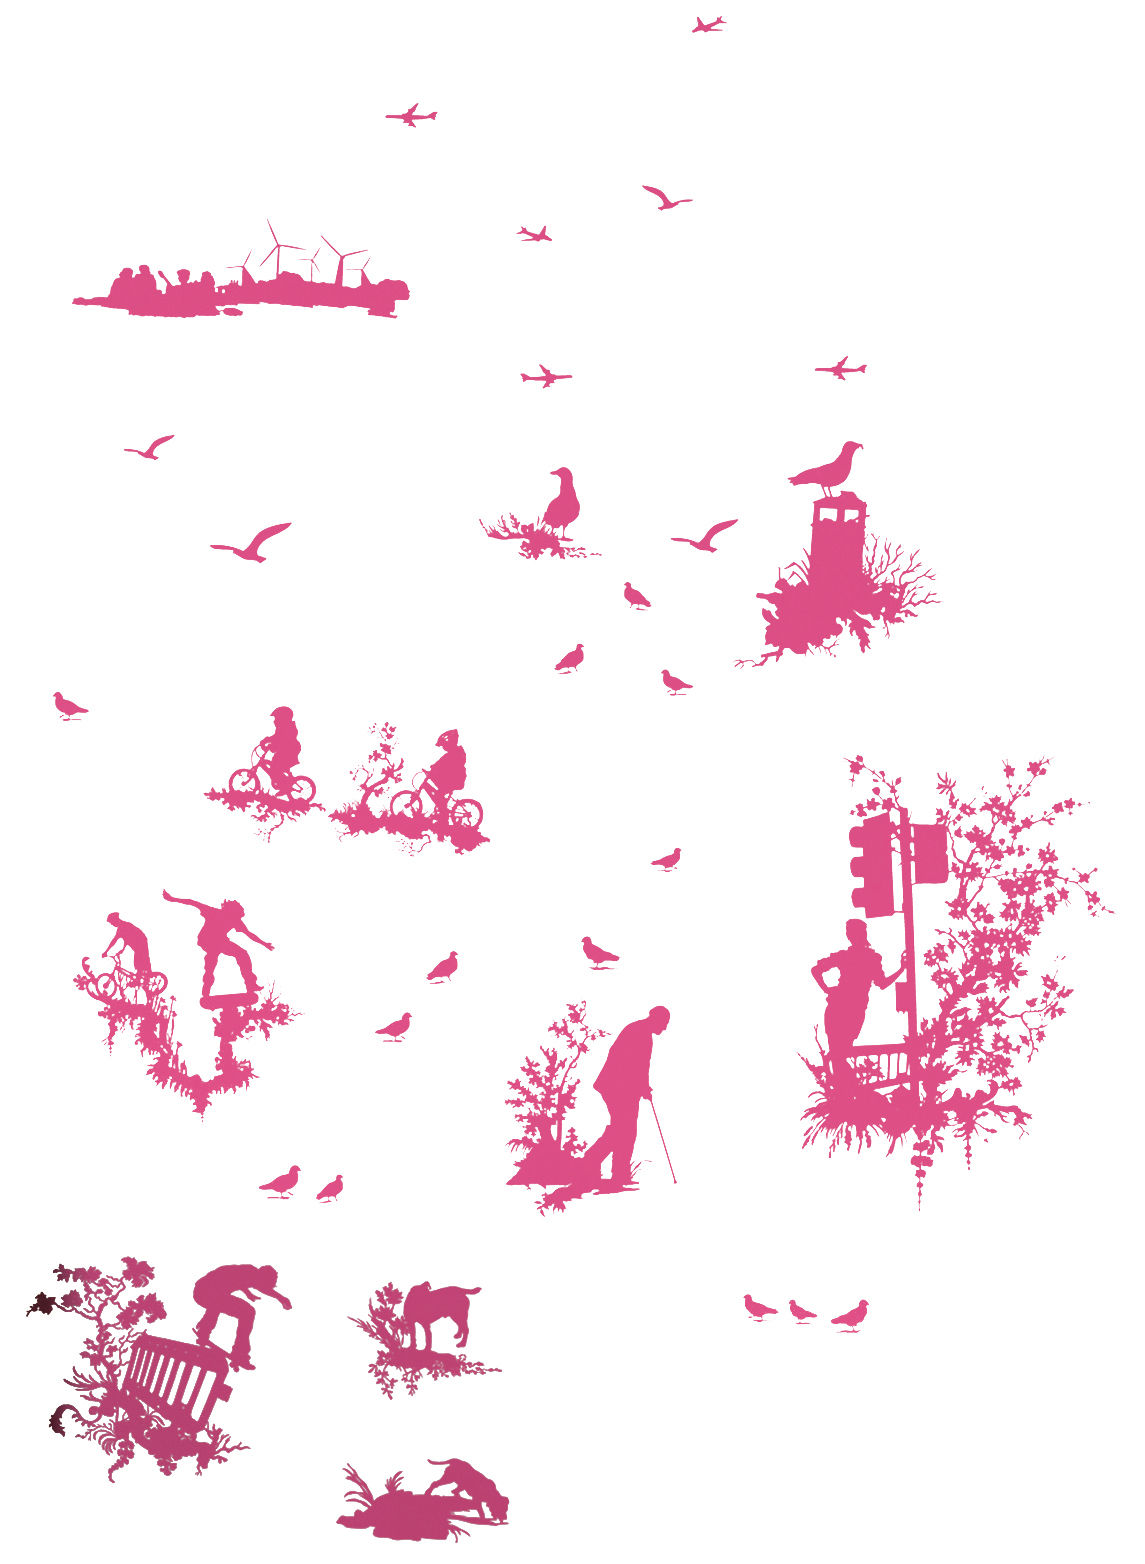 Decoration - Wallpaper & Wall Stickers - Silhouette Toile Sticker by Domestic - Pink - Vinal